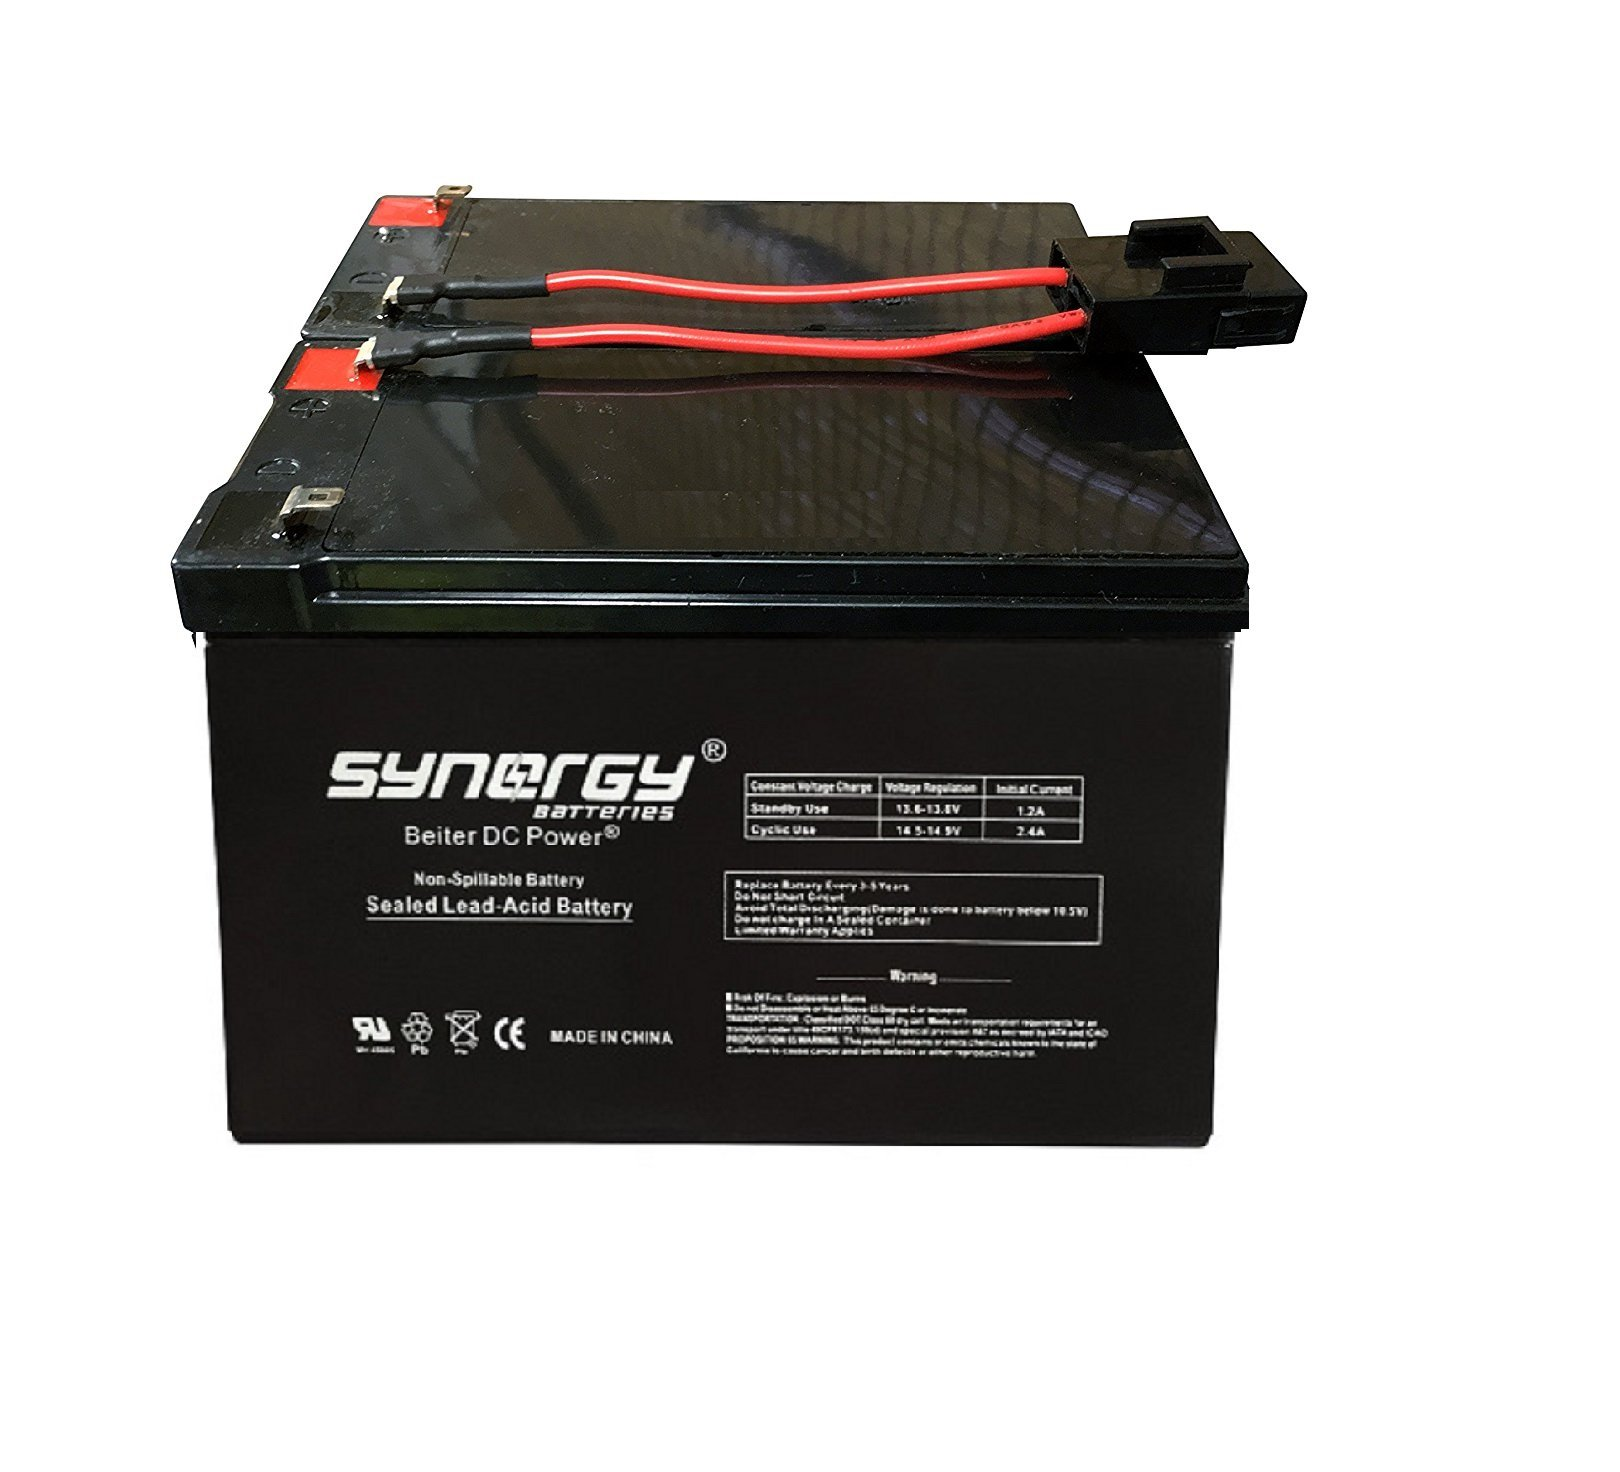 APC Smart-UPS SMT750 High Performance Replacement Battery Beiter DC Power